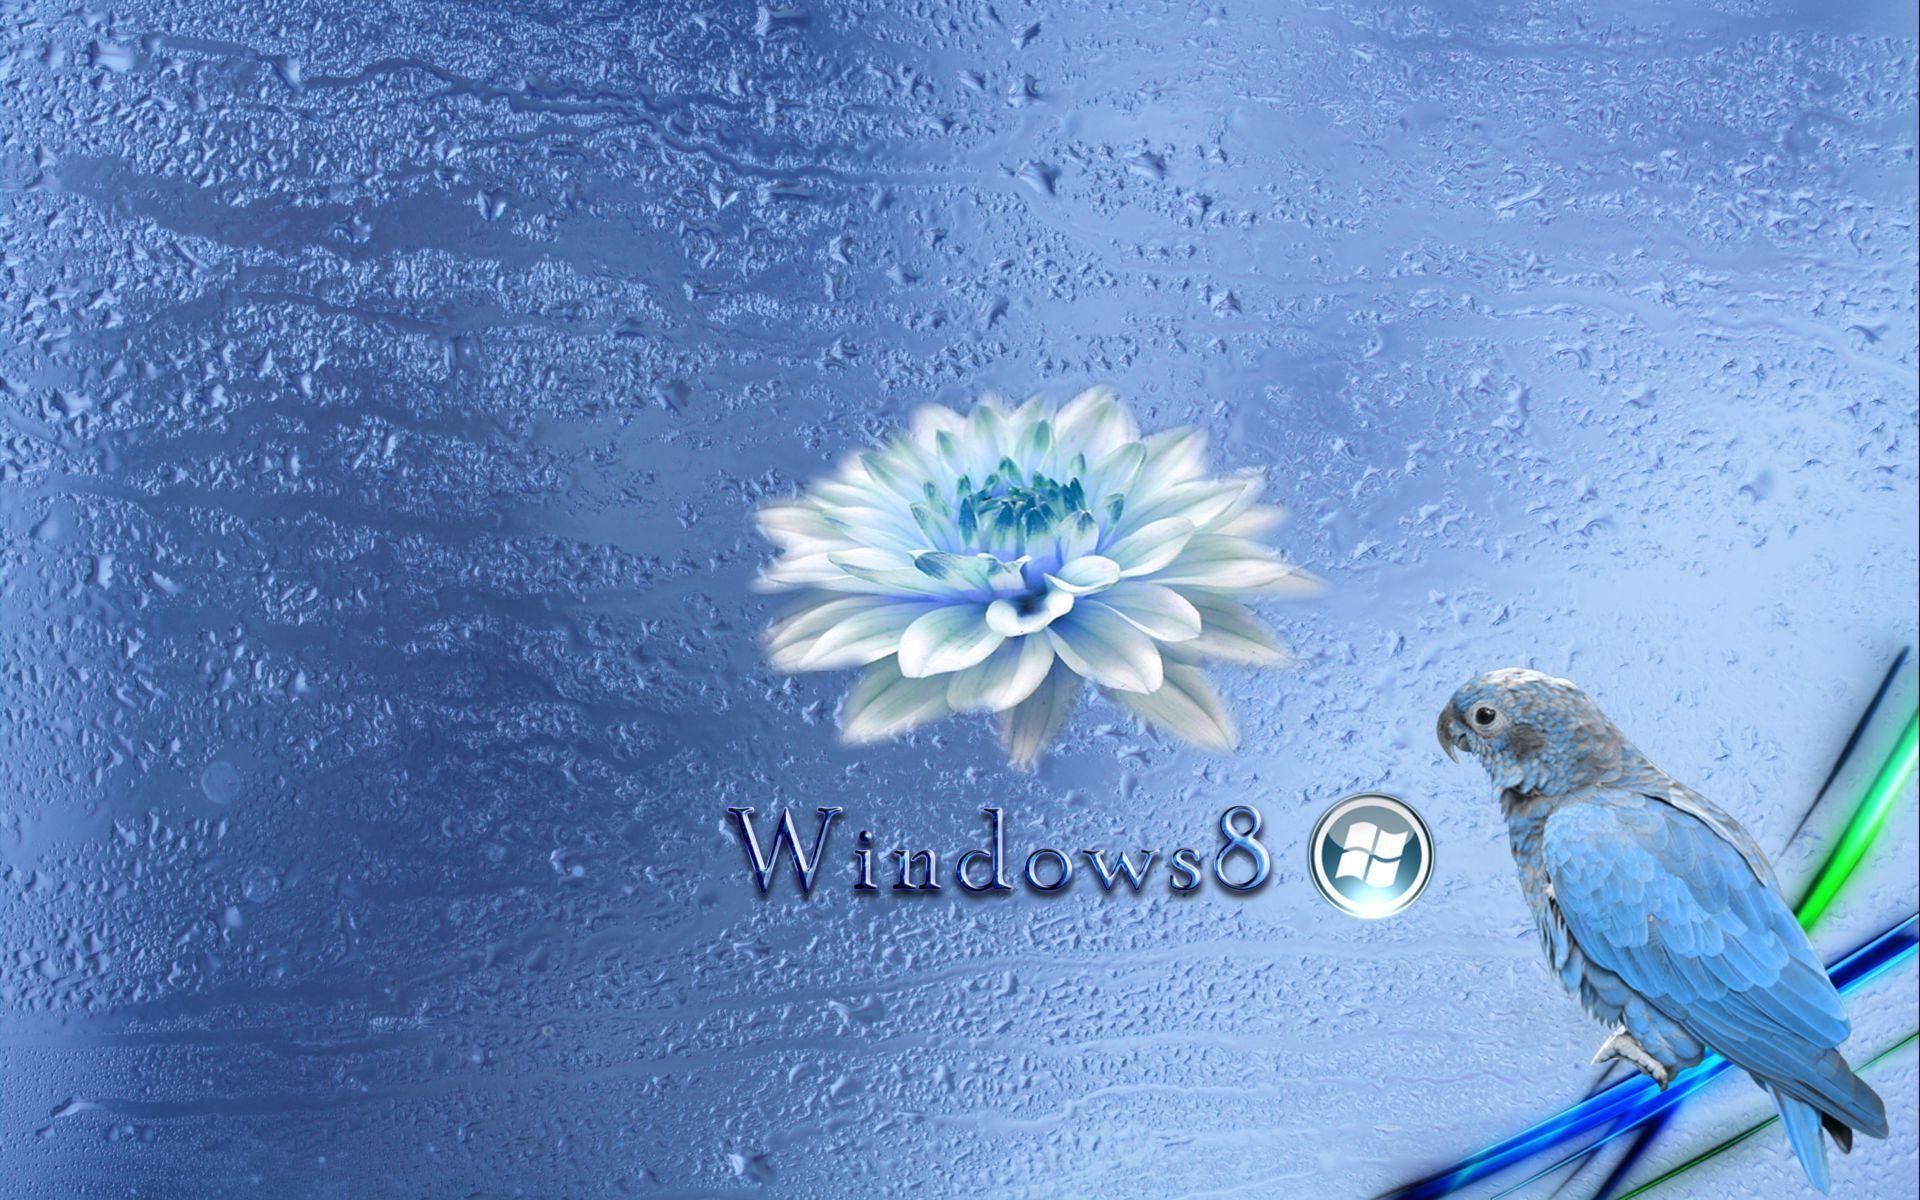 Free Live Wallpapers For Windows 8: Windows 8 HD Wallpapers